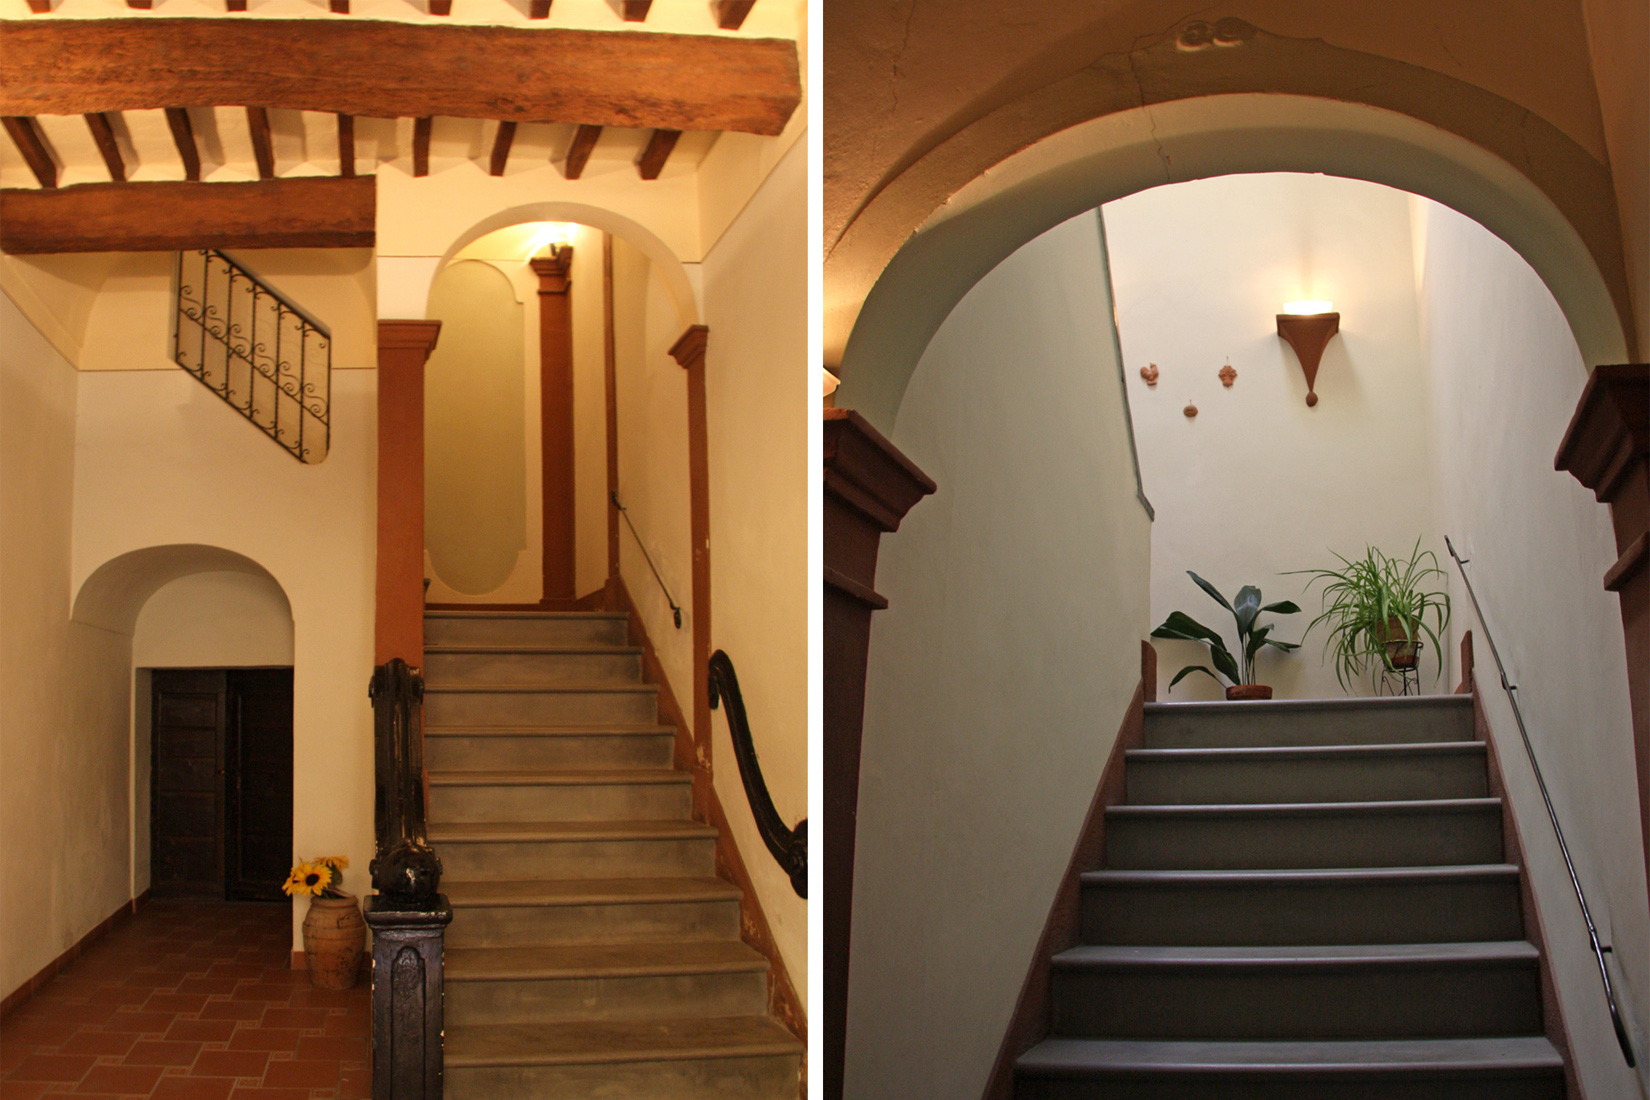 Interior hallway: entrance and stairs leading to apartment